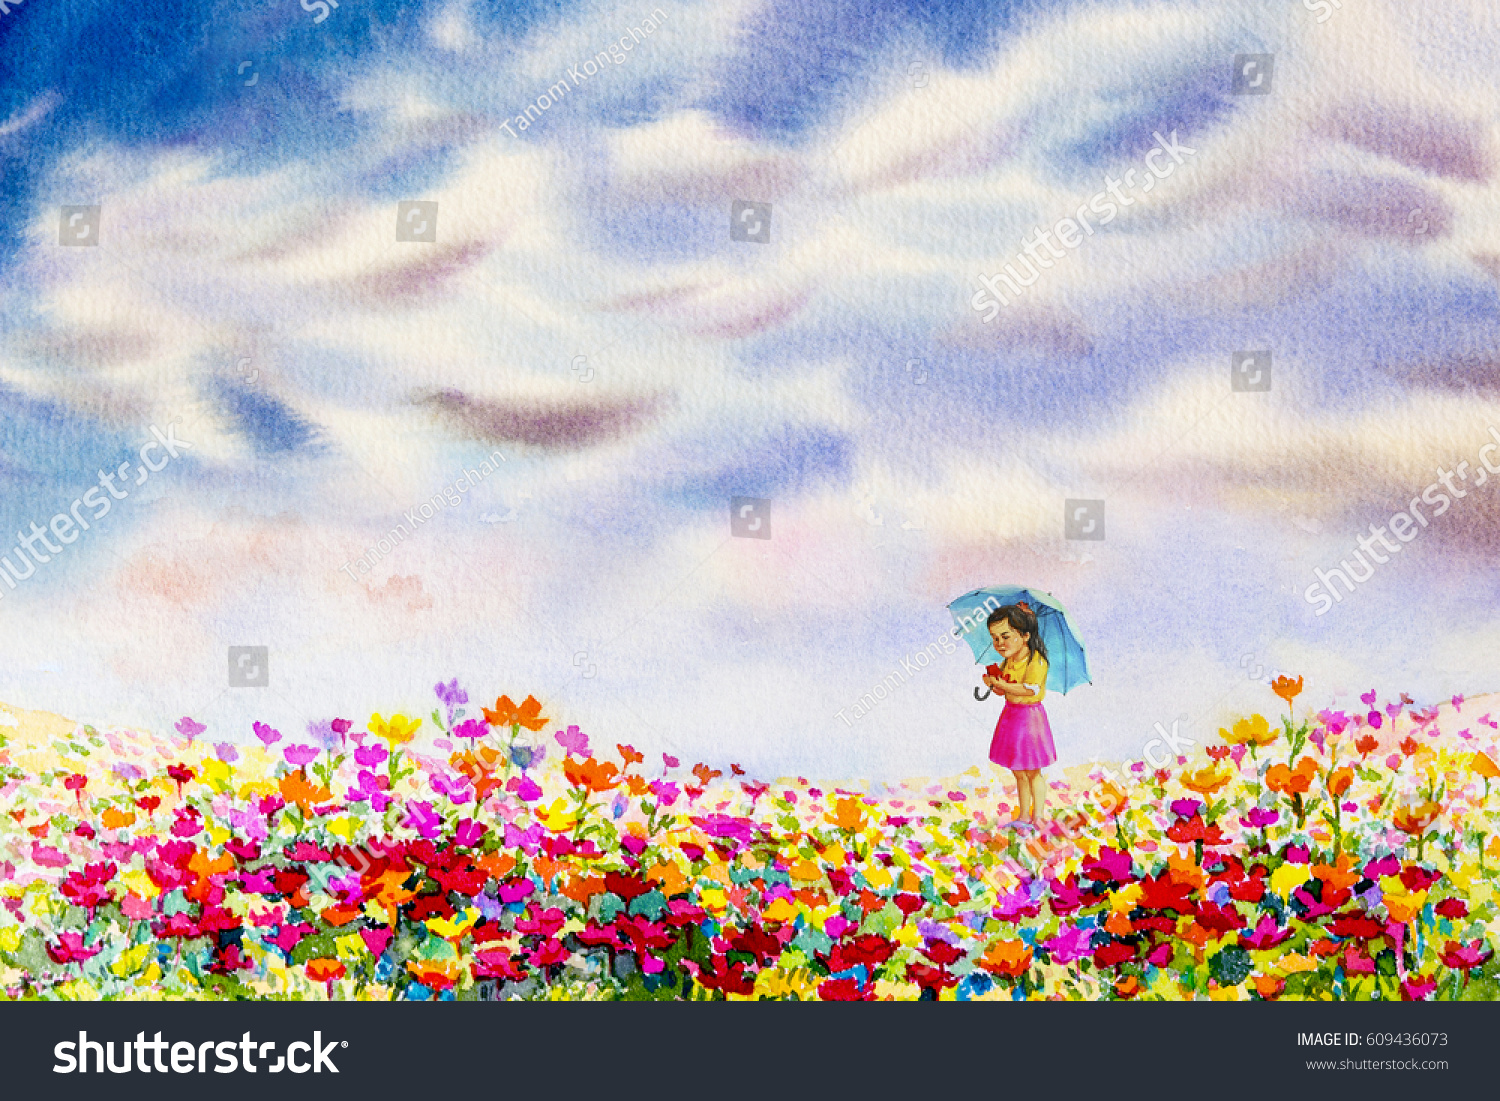 Girl hold teddy bears stand looking stock illustration royalty girl hold teddy bears stand looking at the daisy flowers garden watercolor painting landscape blue izmirmasajfo